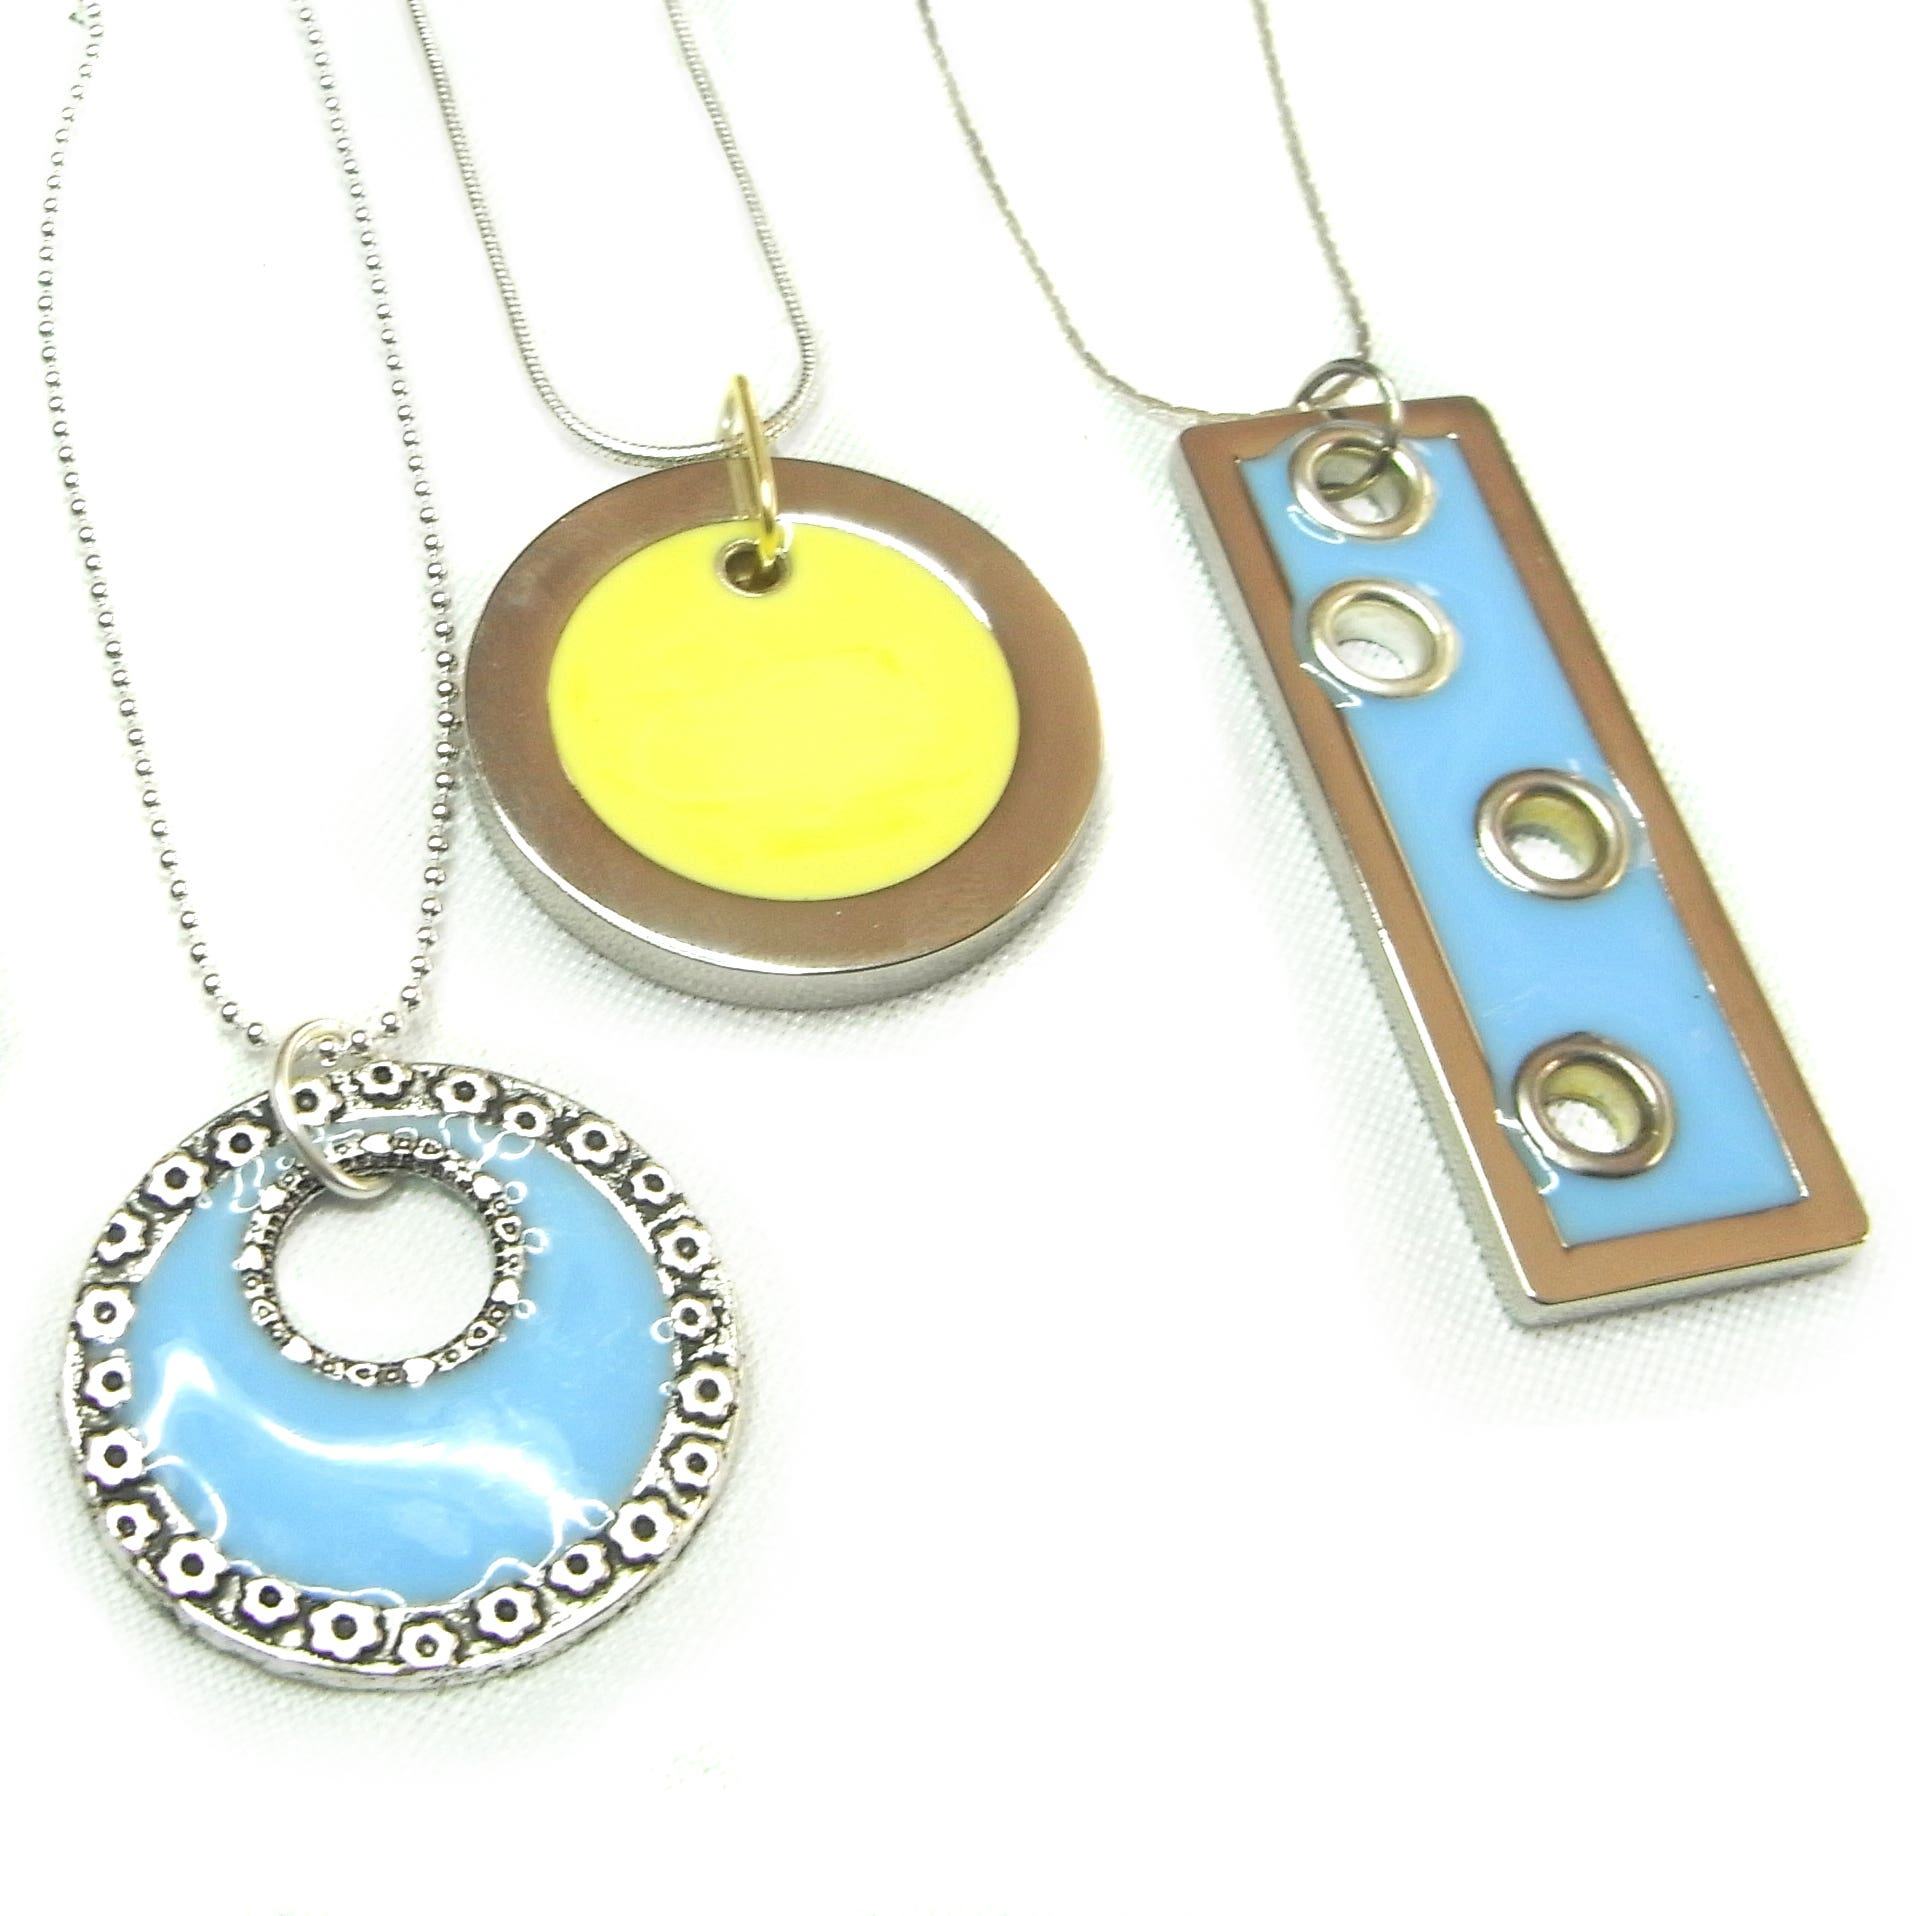 2 circle pendants in pastel yellow and pastel blue and a rectangular blue resin pendant inset with grommets